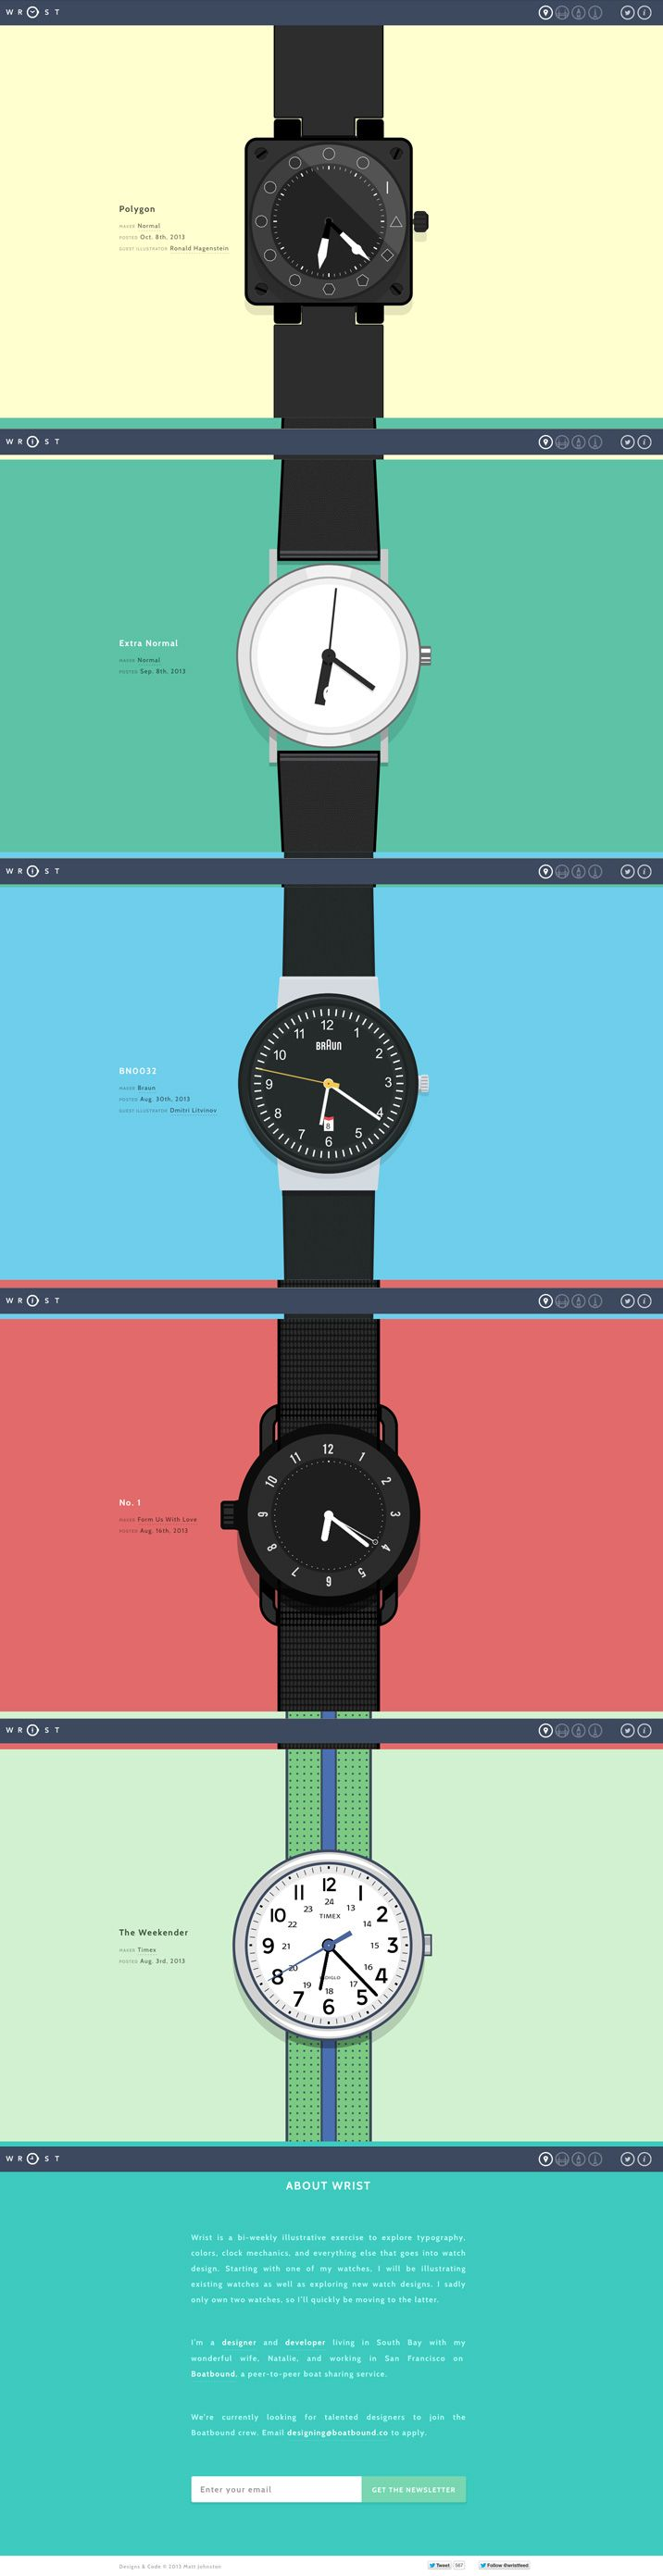 Winner 8 October 2013 Wrist by Matt Johnston http://www.cssdesignawards.com/css-web-design-award-winner.php?id=23245 A bi-weekly illustrative exercise in making new and old watches come to life. #WebAward #Colorful #FlatDesign #Scroll